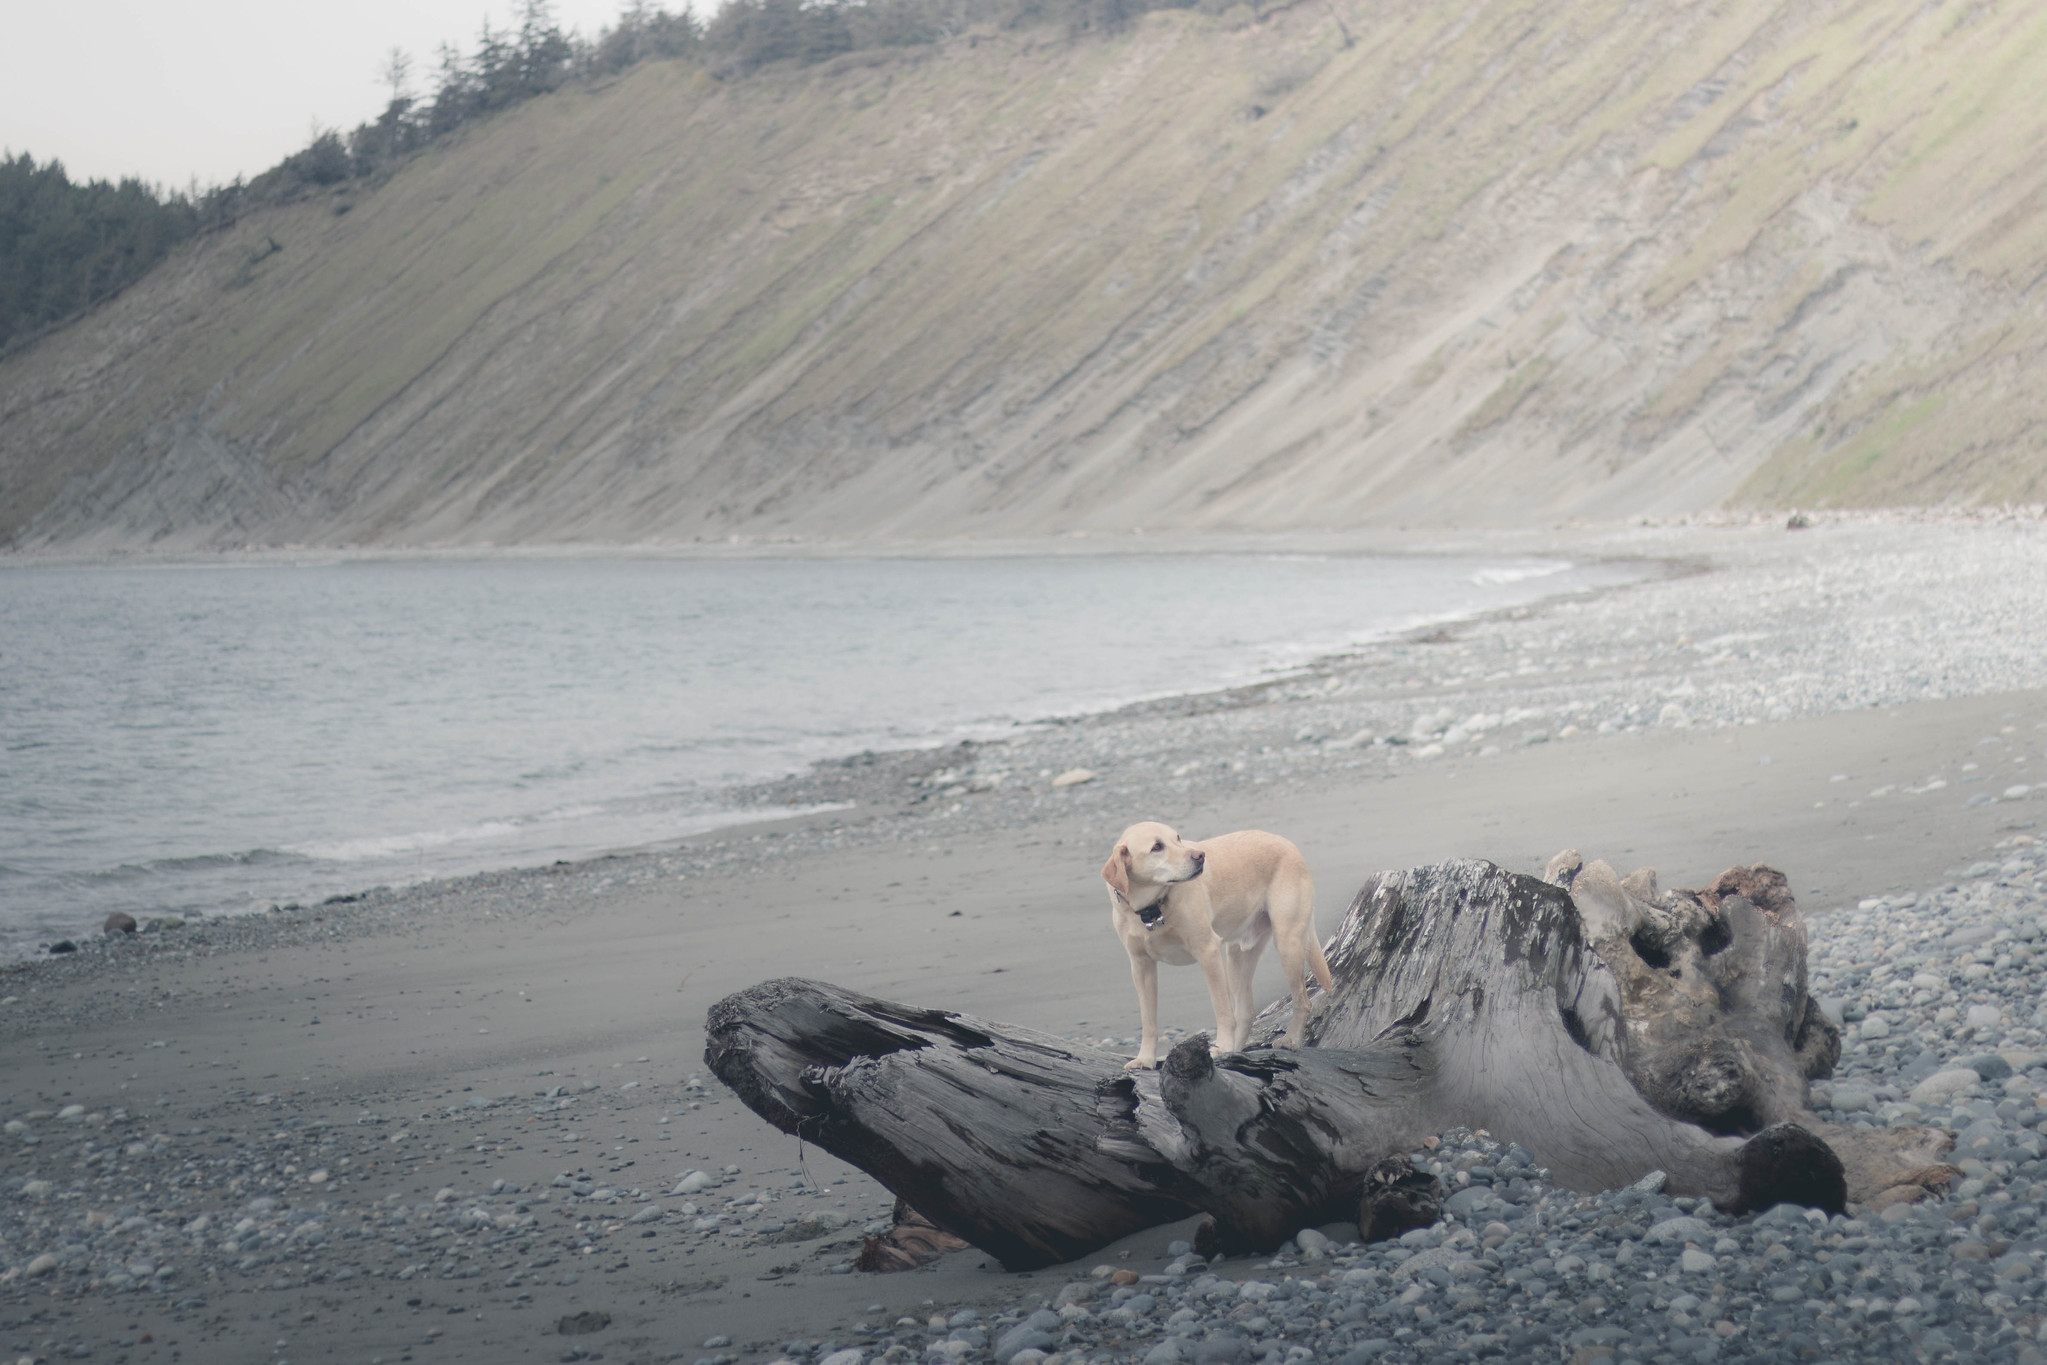 Water dogs at Ebey's Landing